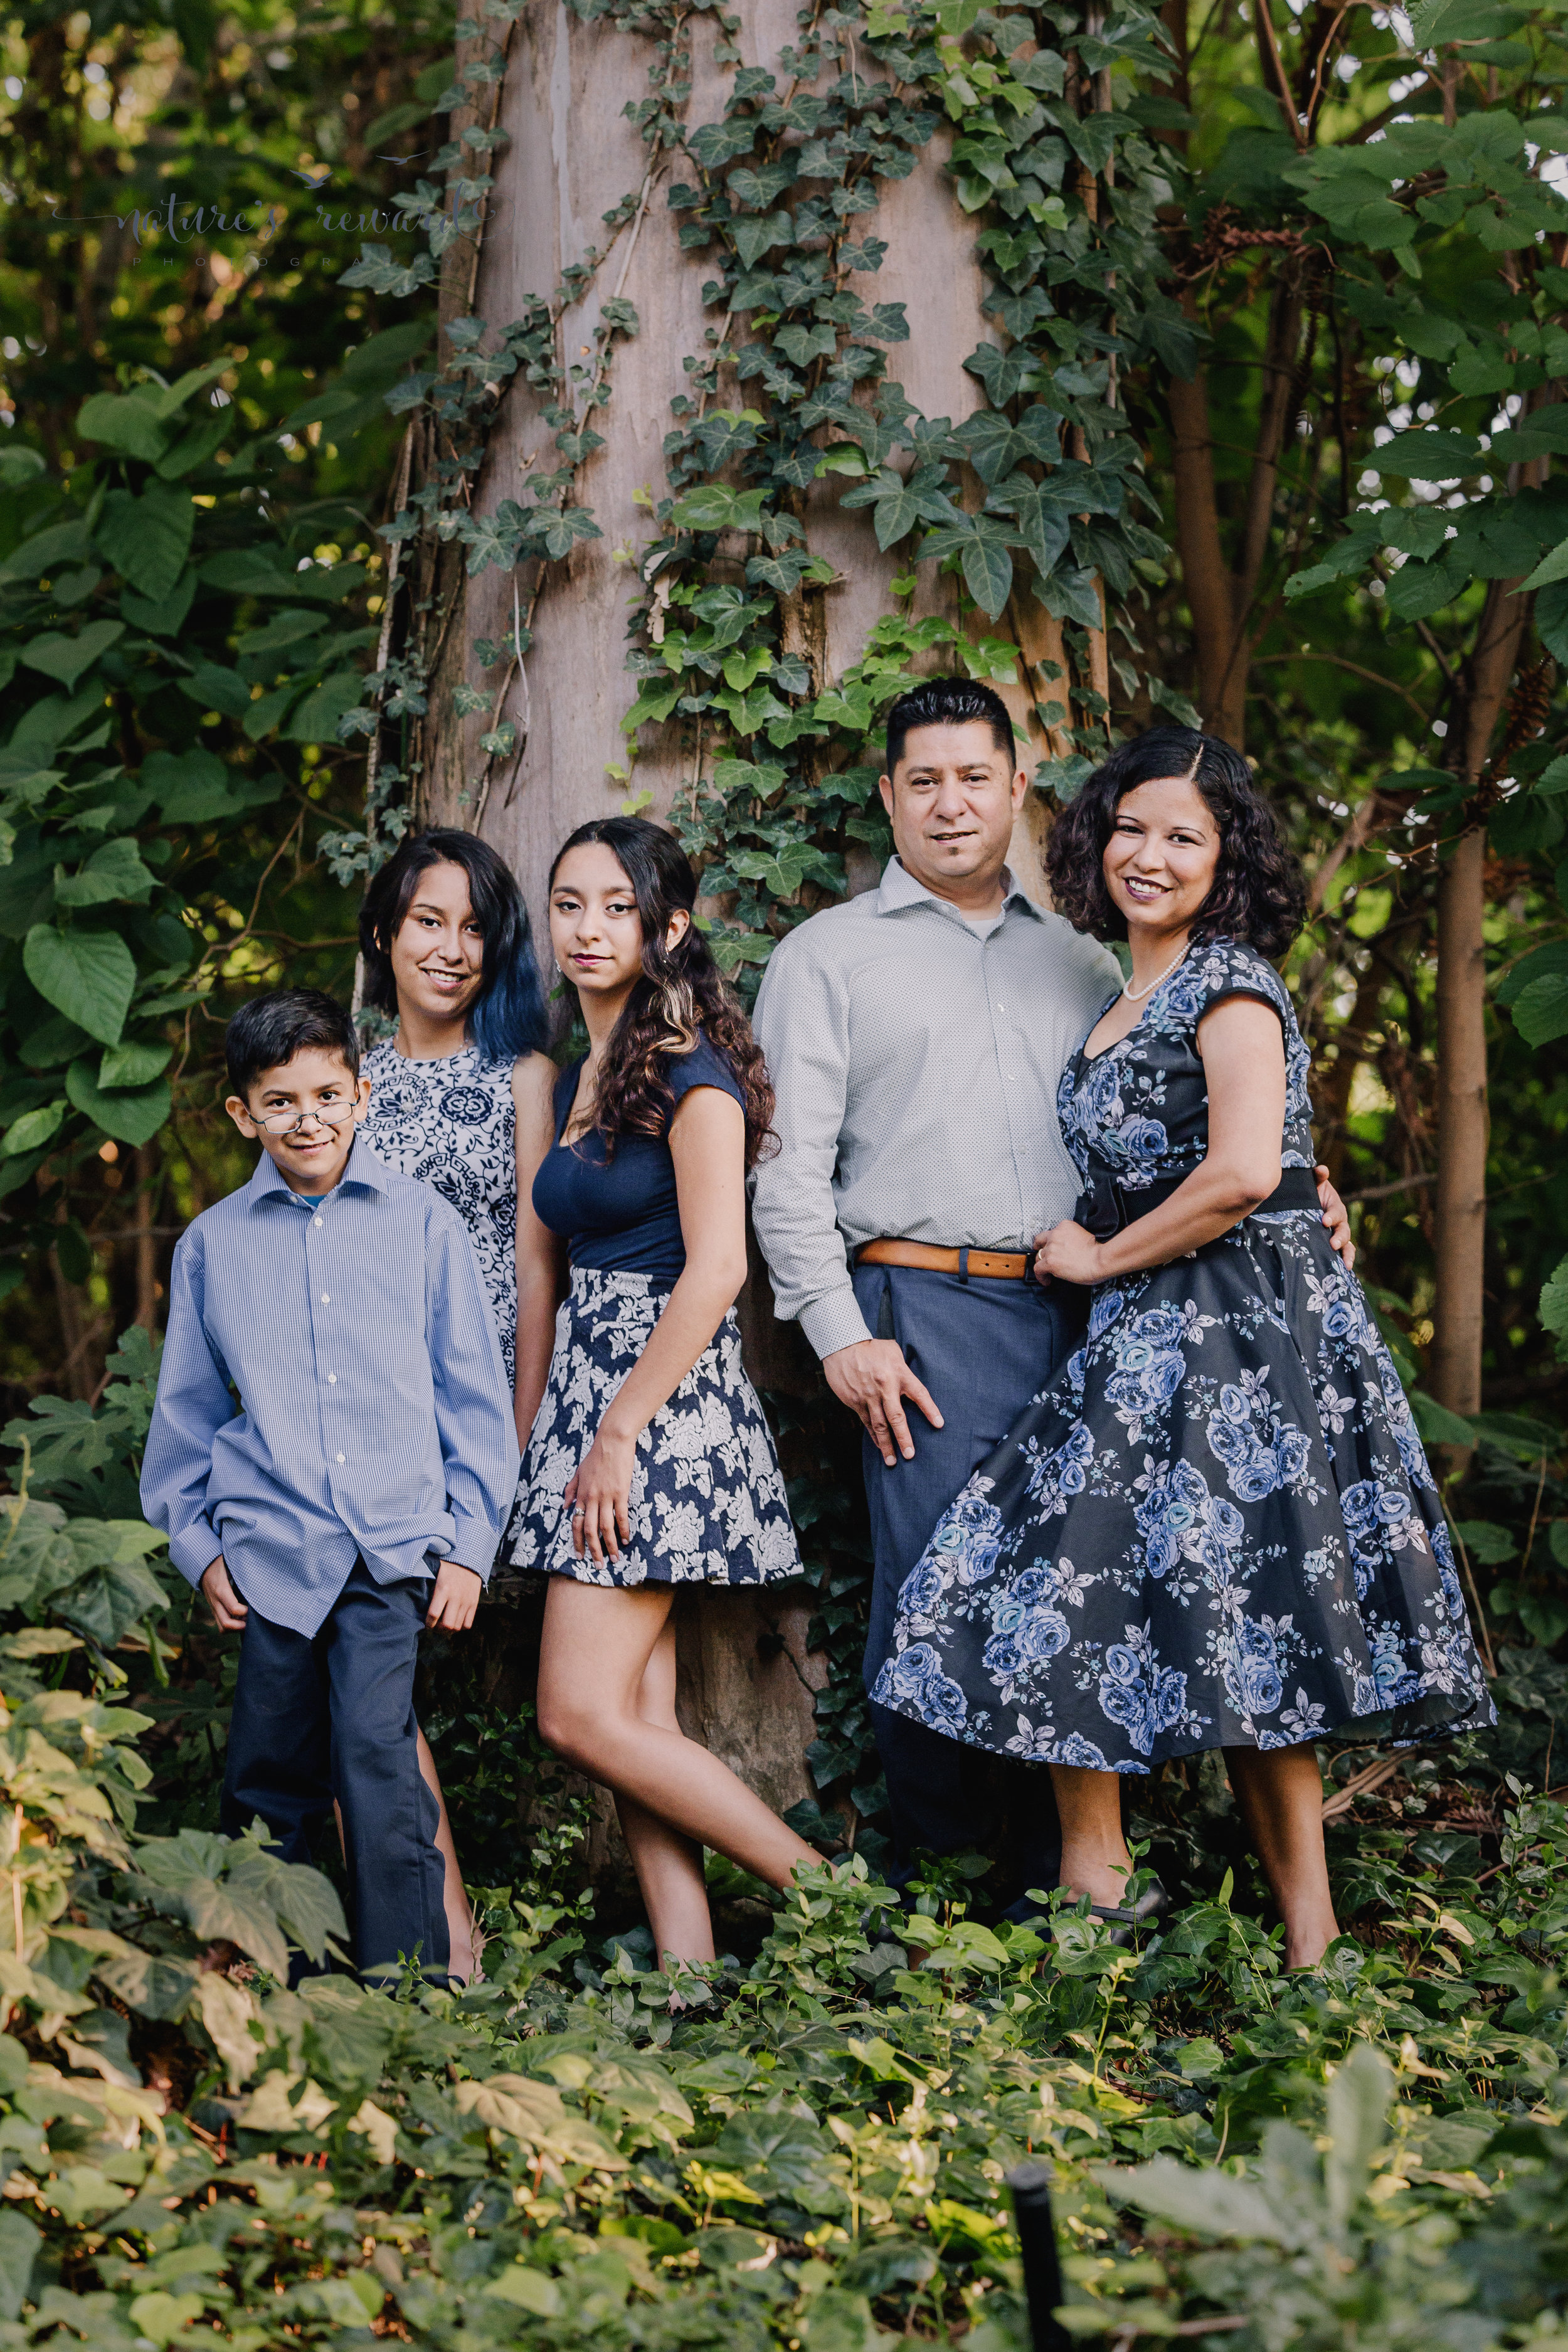 Lovely family wearing blues and blue florals dresses in this gorgeous family photography portrait by a magnificent tree with ivy by Nature's Reward Photography.